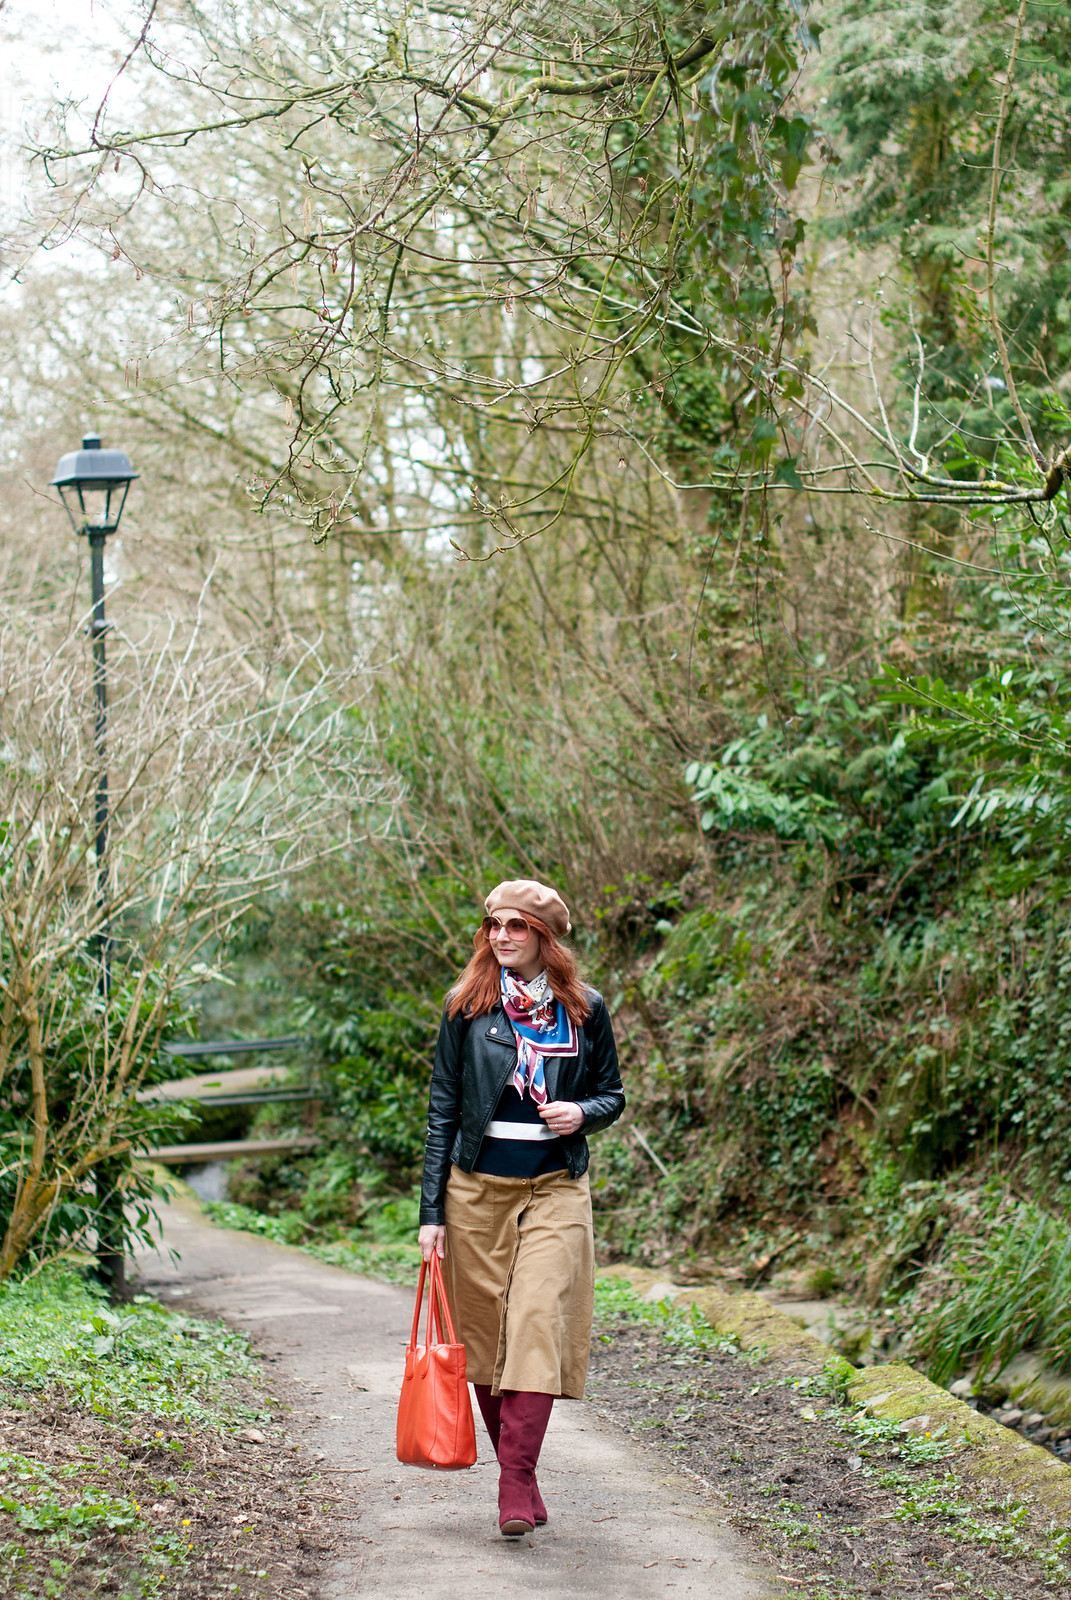 The Power of Accessories: Adding Finishing Touches to an Outfit of Black Leather Biker Jacket, Camel Midi Skirt, Stripe Sweater and Slouchy Knee High Burgundy Boots | Not Dressed As Lamb, over 40 style blog